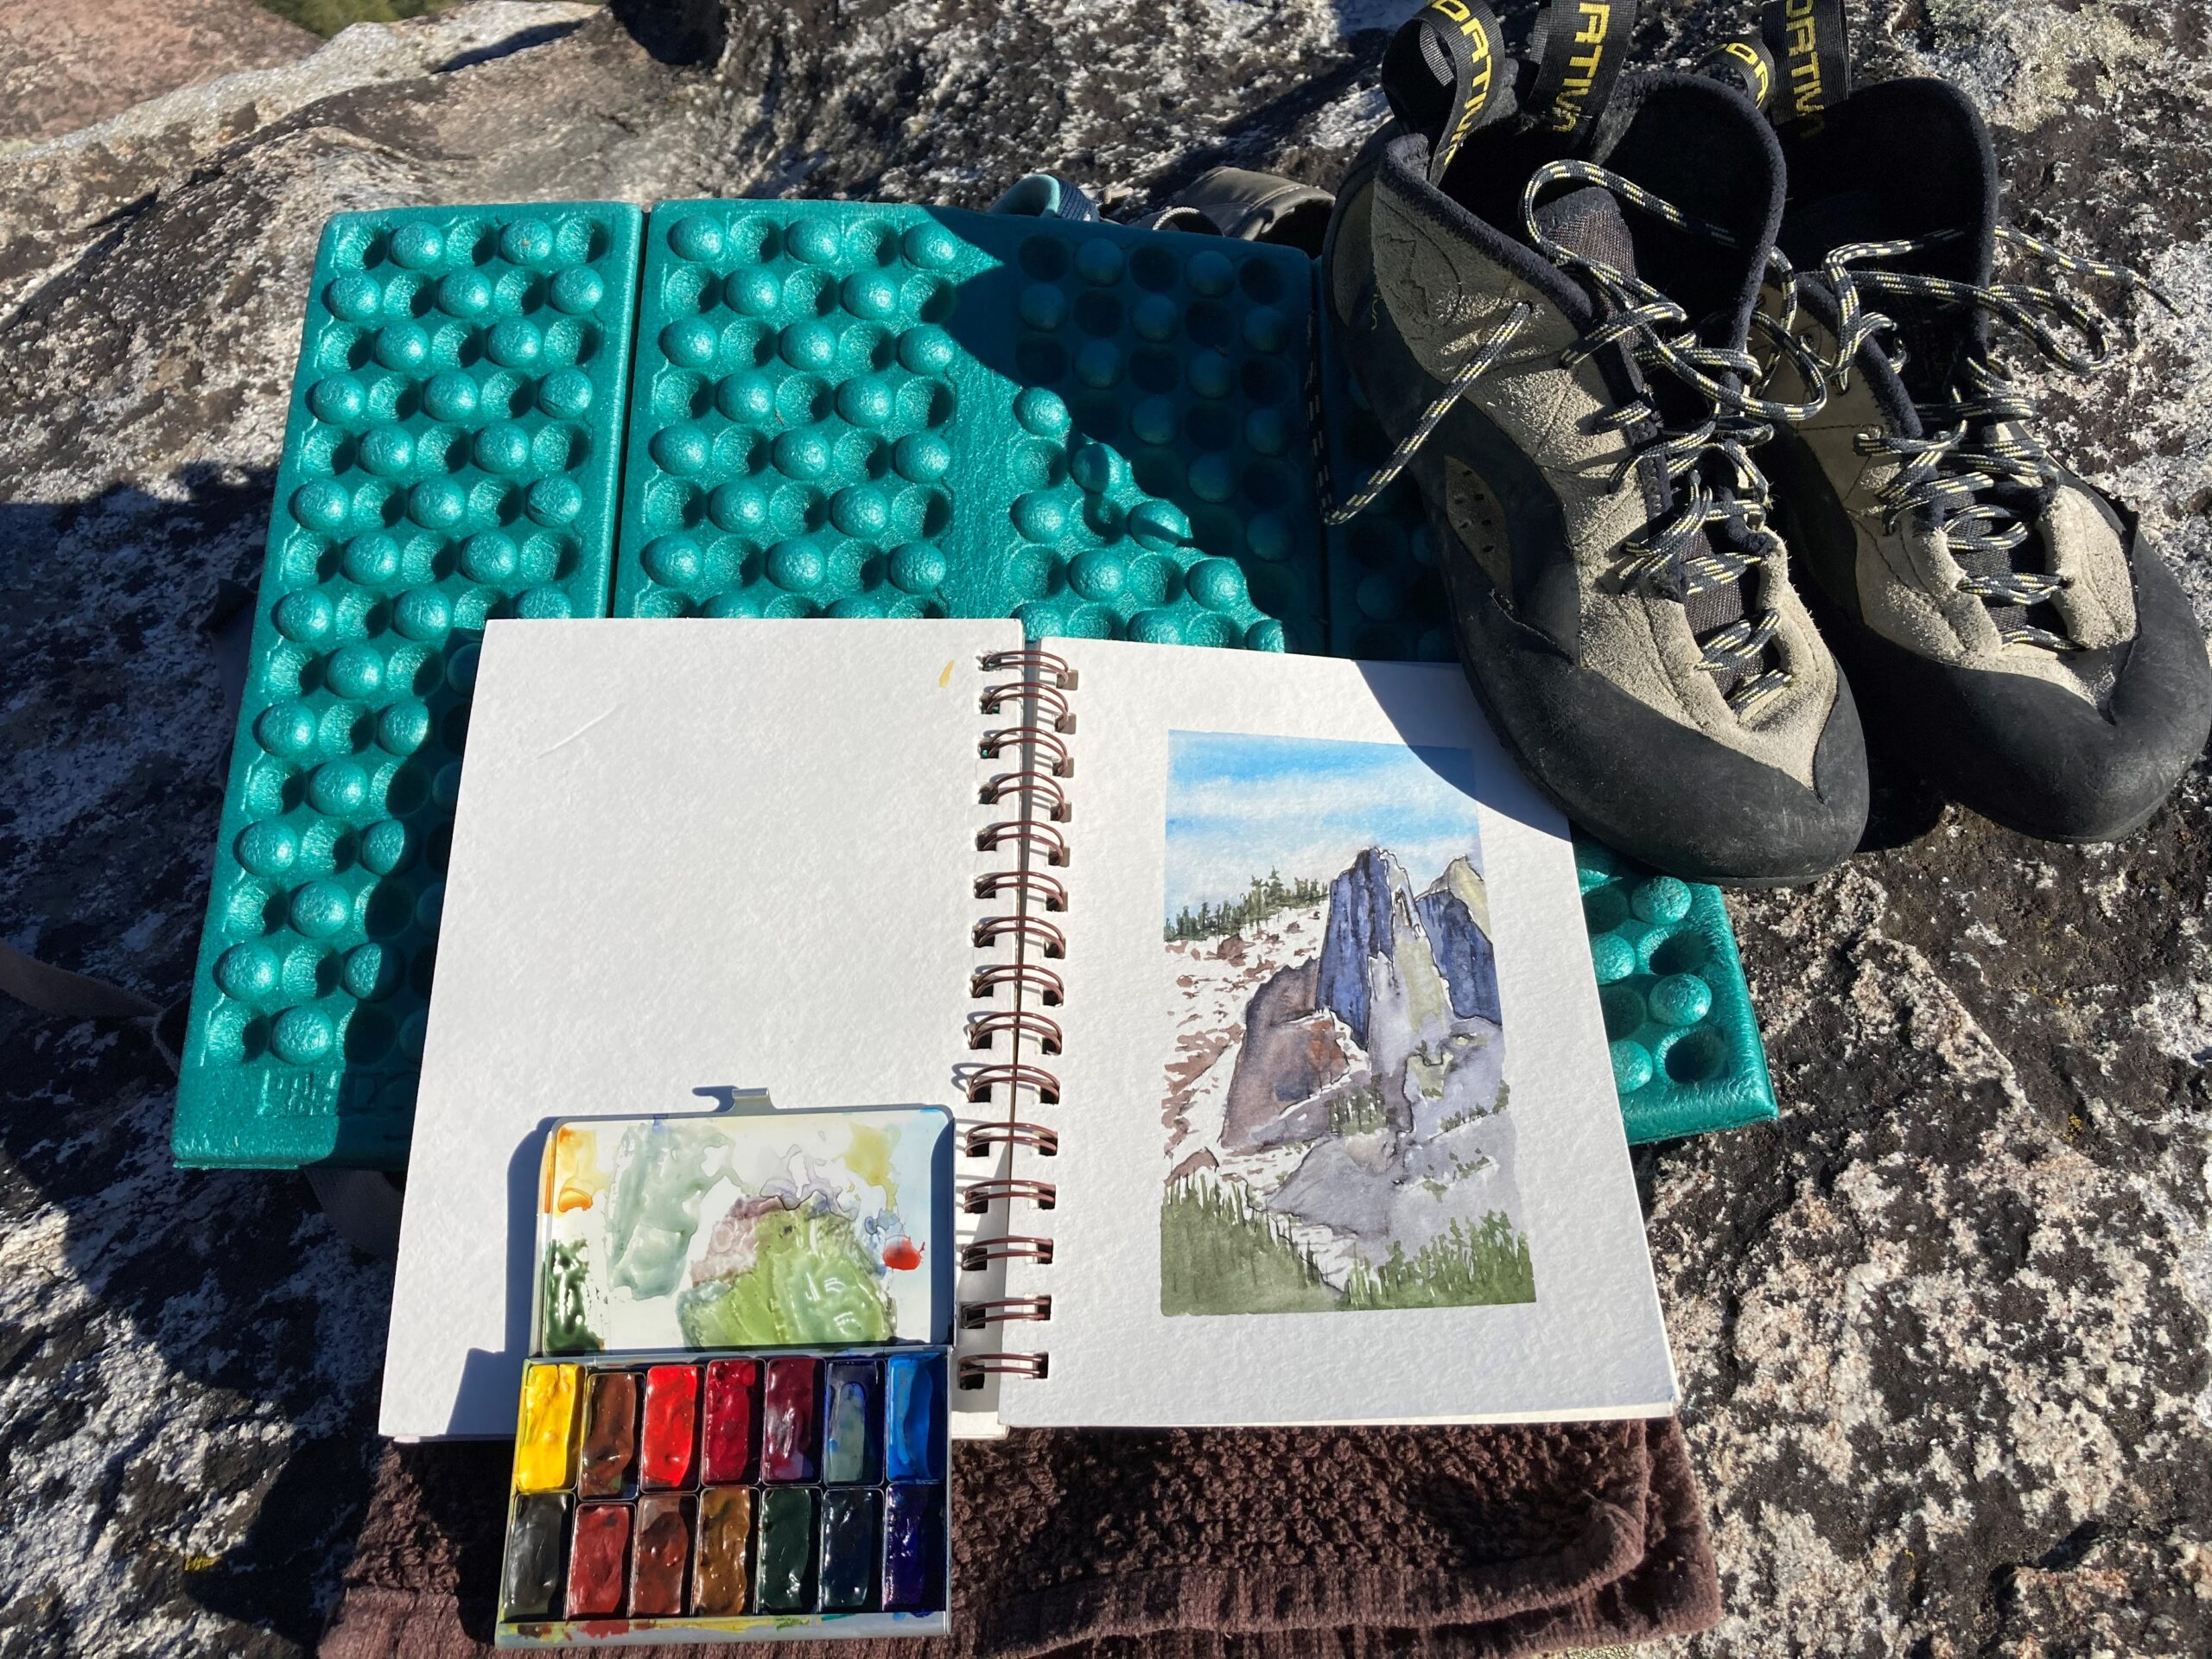 Photo showing a small watercolor kit with multiple paint colors, a sketchbook open to a watercolor painting of a mountain scene, and a pair of hiking boots, all resting on a folded sleeping pad.